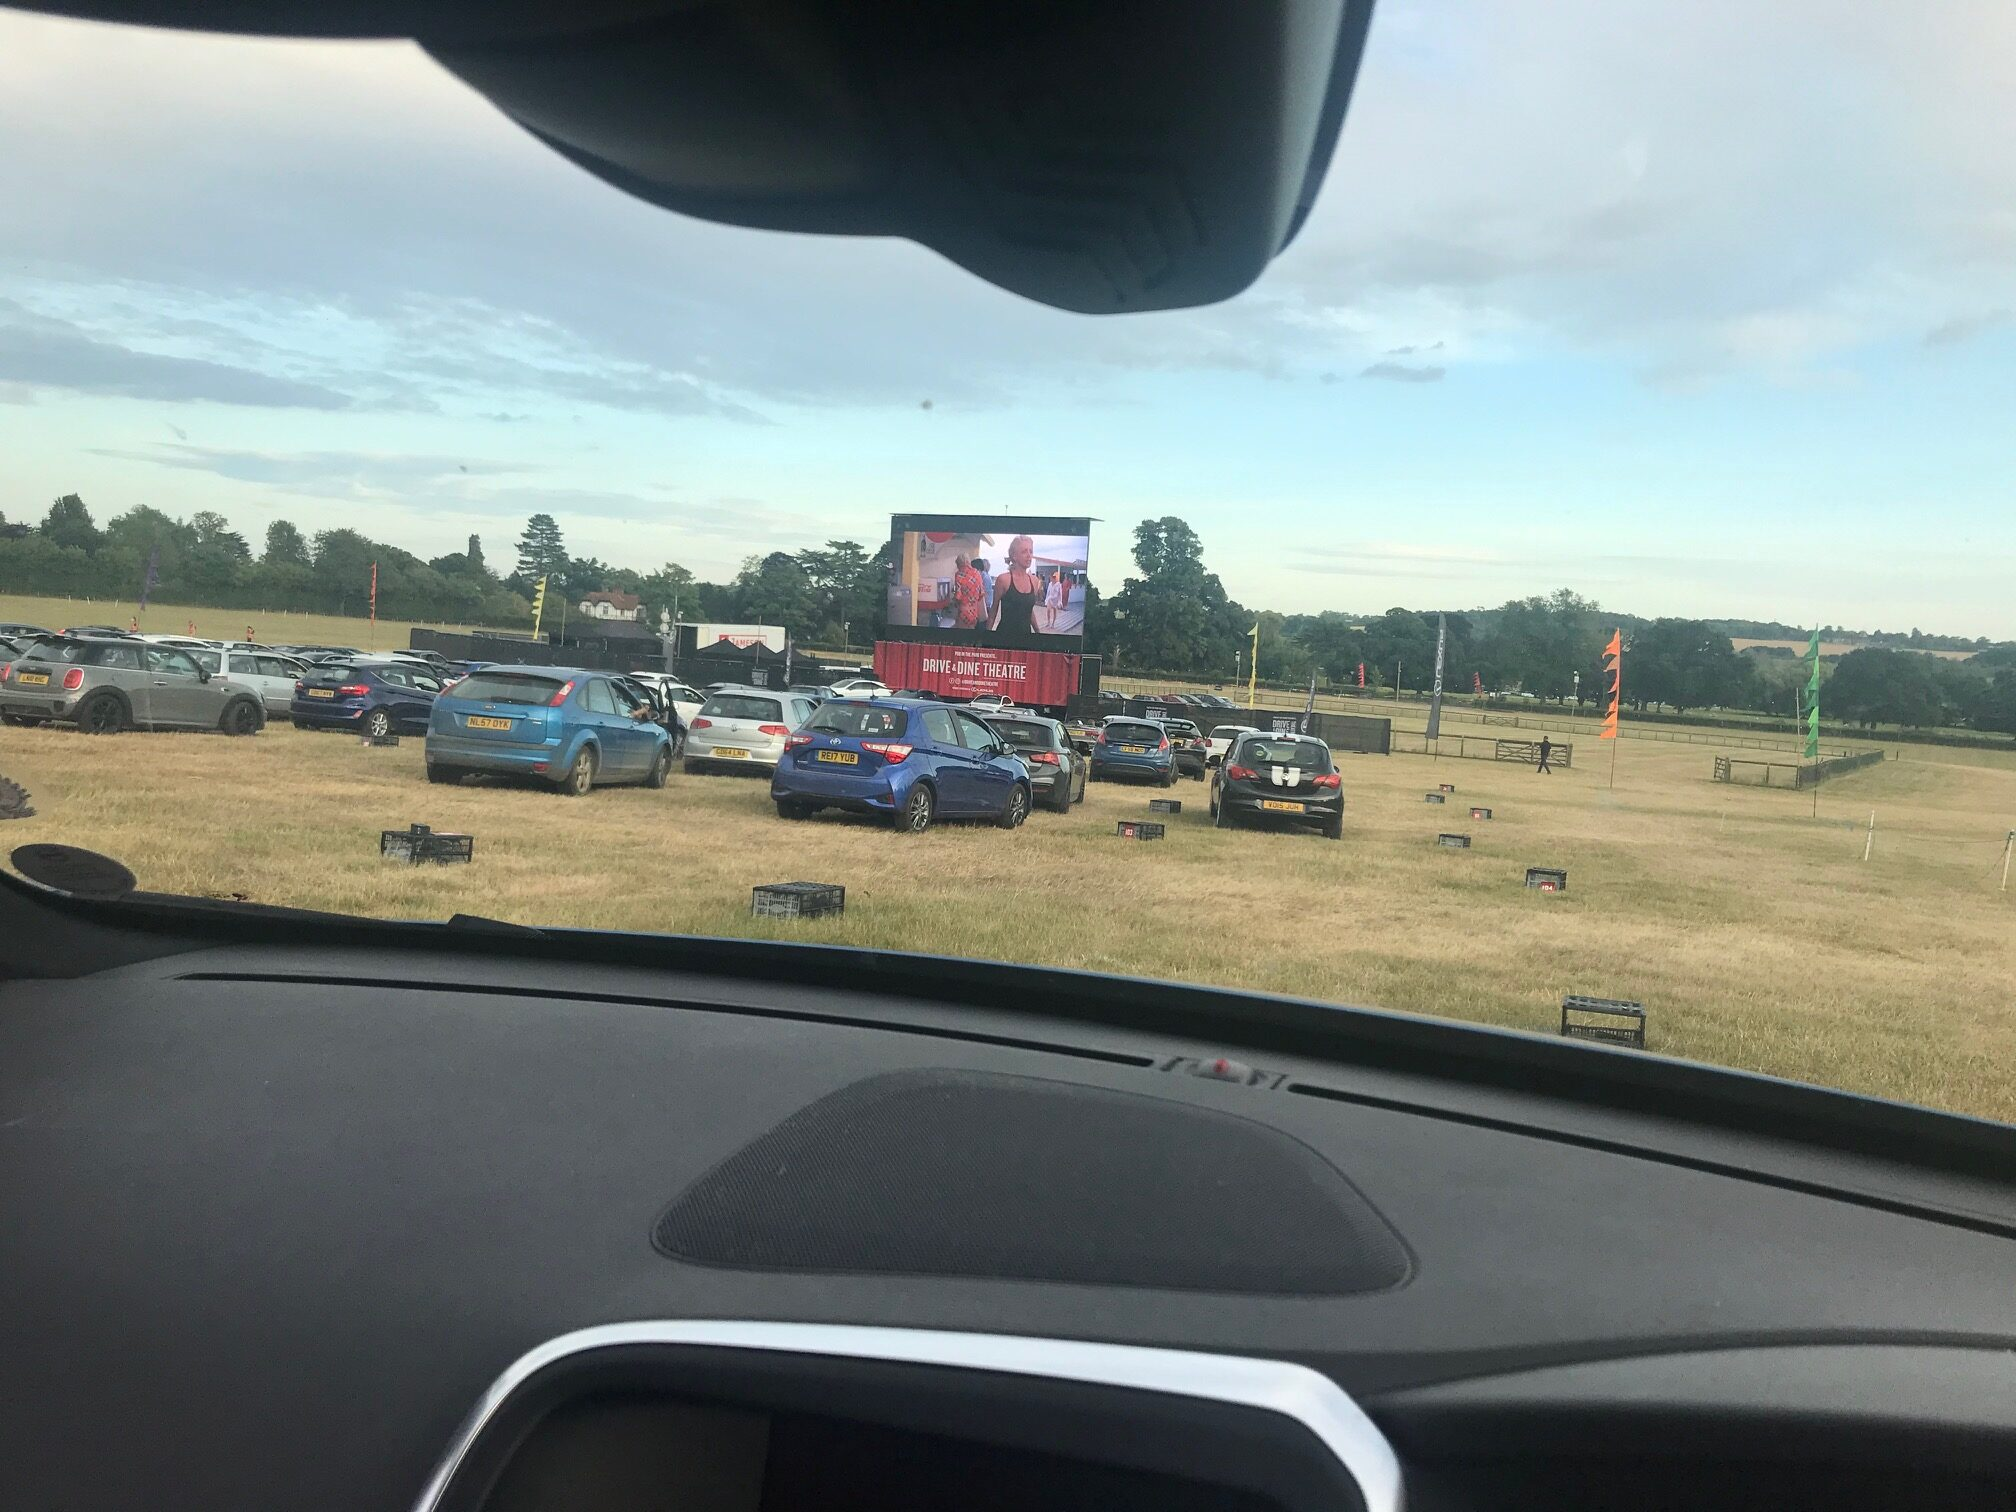 drive-in movie, view of the big screen for Jaws